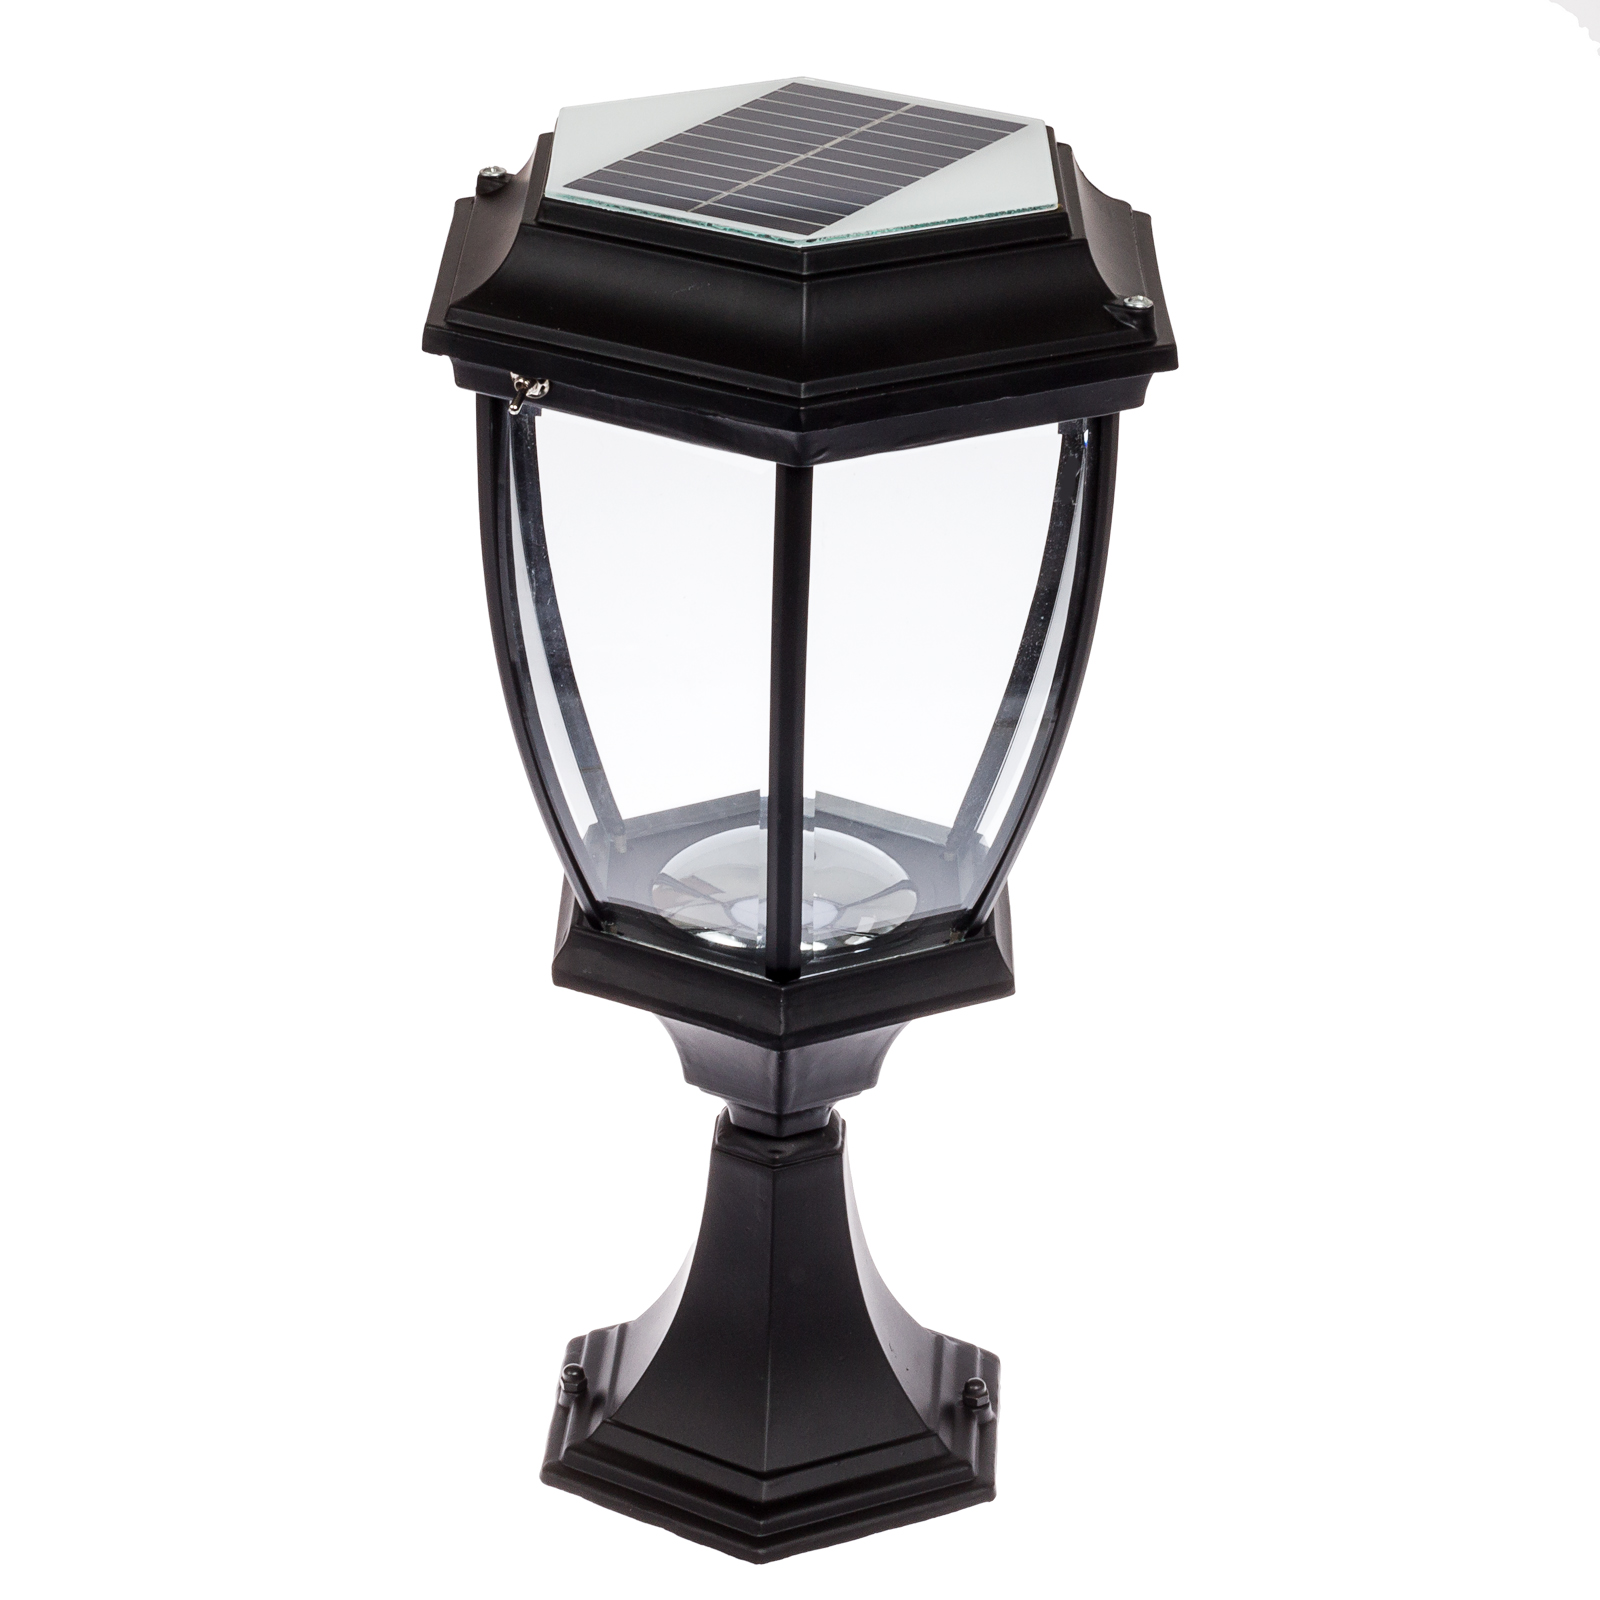 Solar 12 led outdoor garden lamp column post topper lantern light black ebay for Solar exterior post lantern light